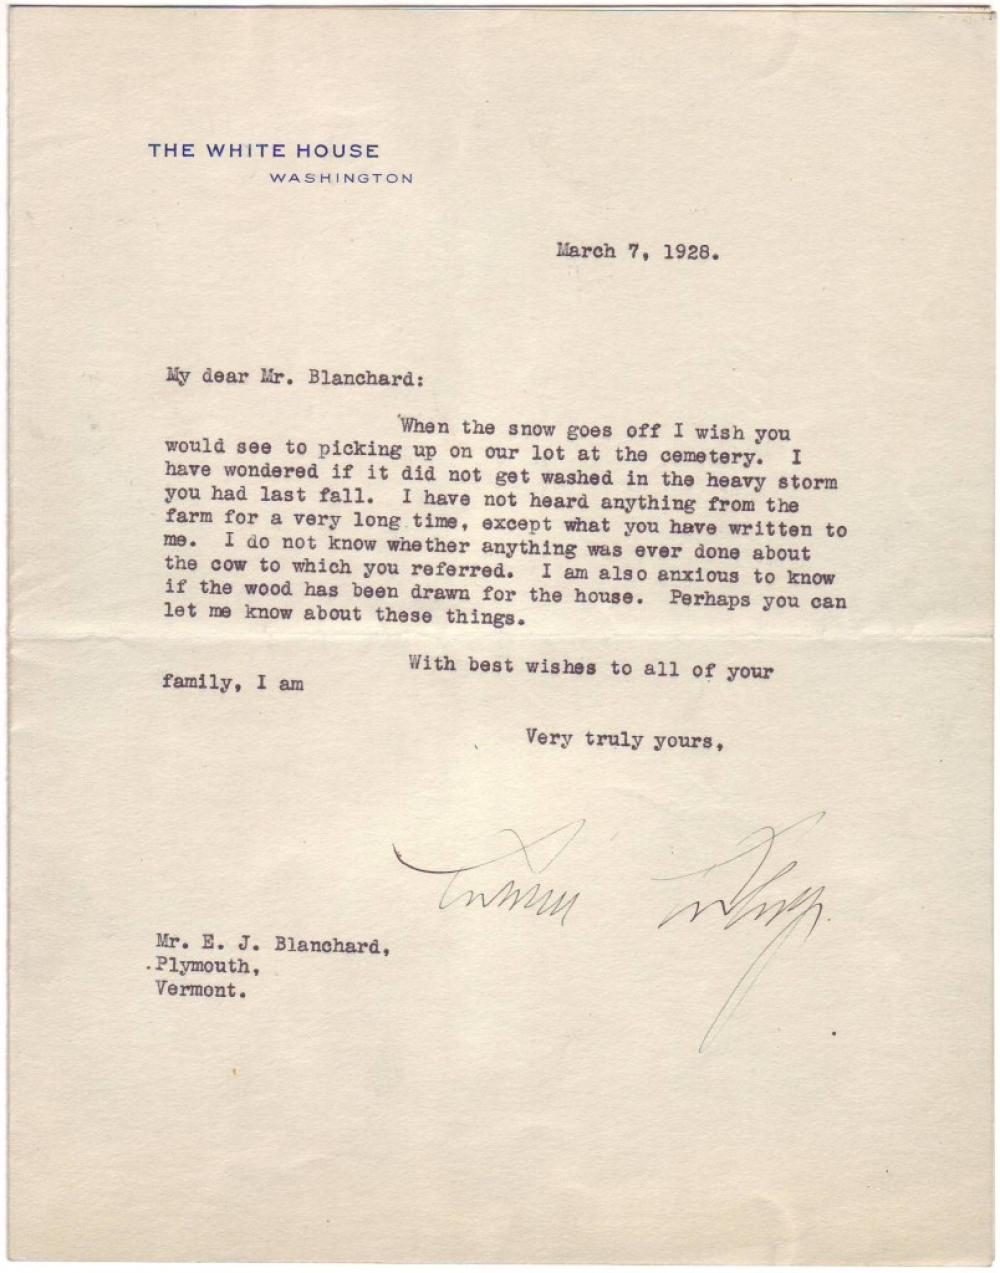 COOLIDGE, CALVIN. Typed Letter Signed, as President, to Edward J. Blanchard, the caretaker of his estate in Plymouth, VT,